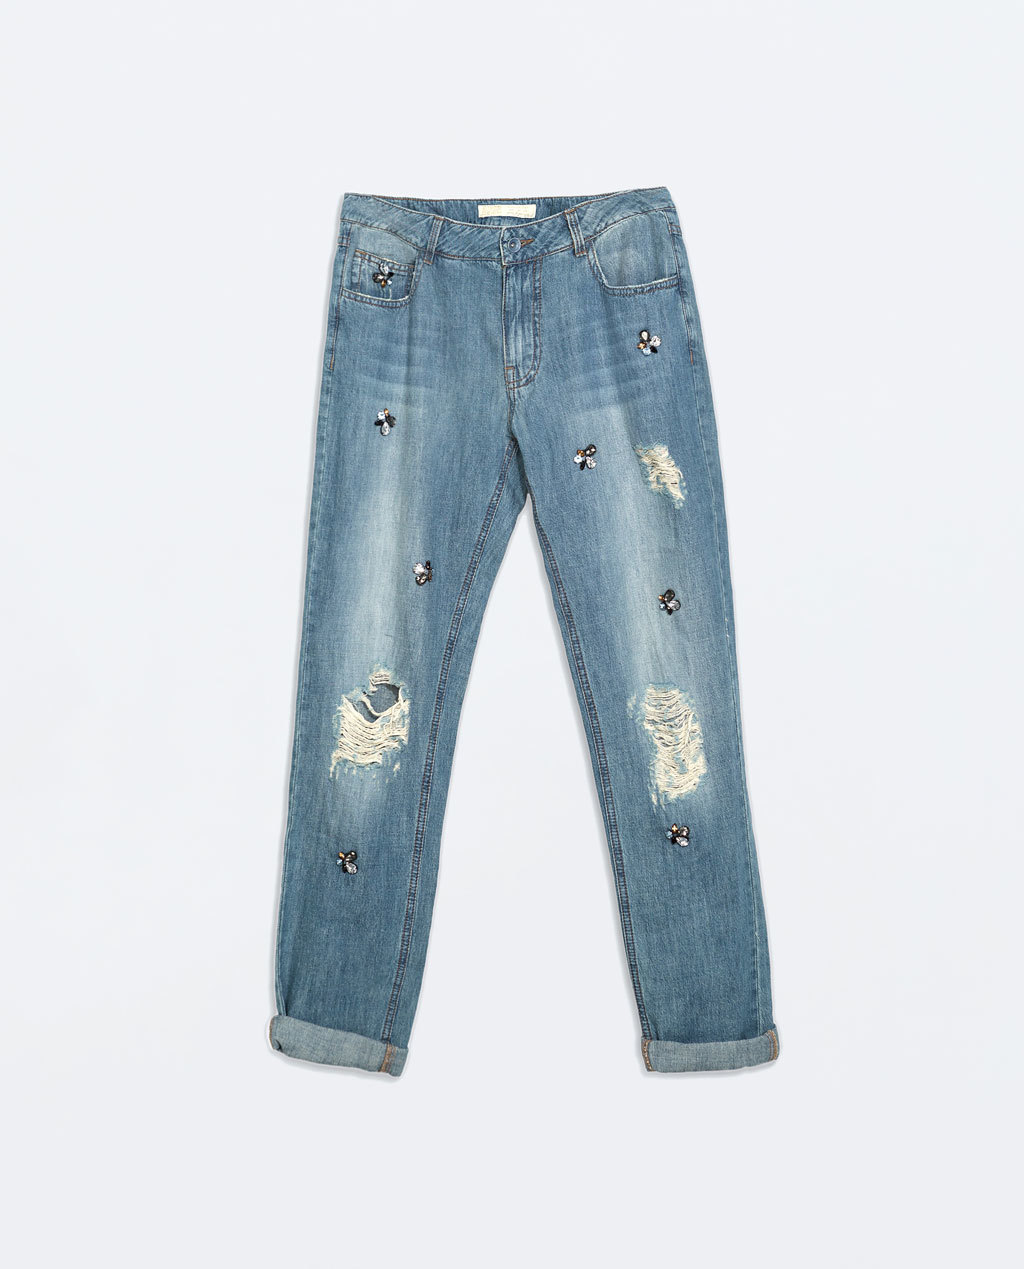 Jewelled Boyfriend Jeans - style: boyfriend; length: standard; pattern: plain; pocket detail: traditional 5 pocket; waist: mid/regular rise; predominant colour: denim; occasions: casual, creative work; fibres: cotton - stretch; jeans detail: whiskering, shading down centre of thigh, washed/faded; jeans & bottoms detail: turn ups; texture group: denim; pattern type: fabric; embellishment: crystals/glass; season: a/w 2014